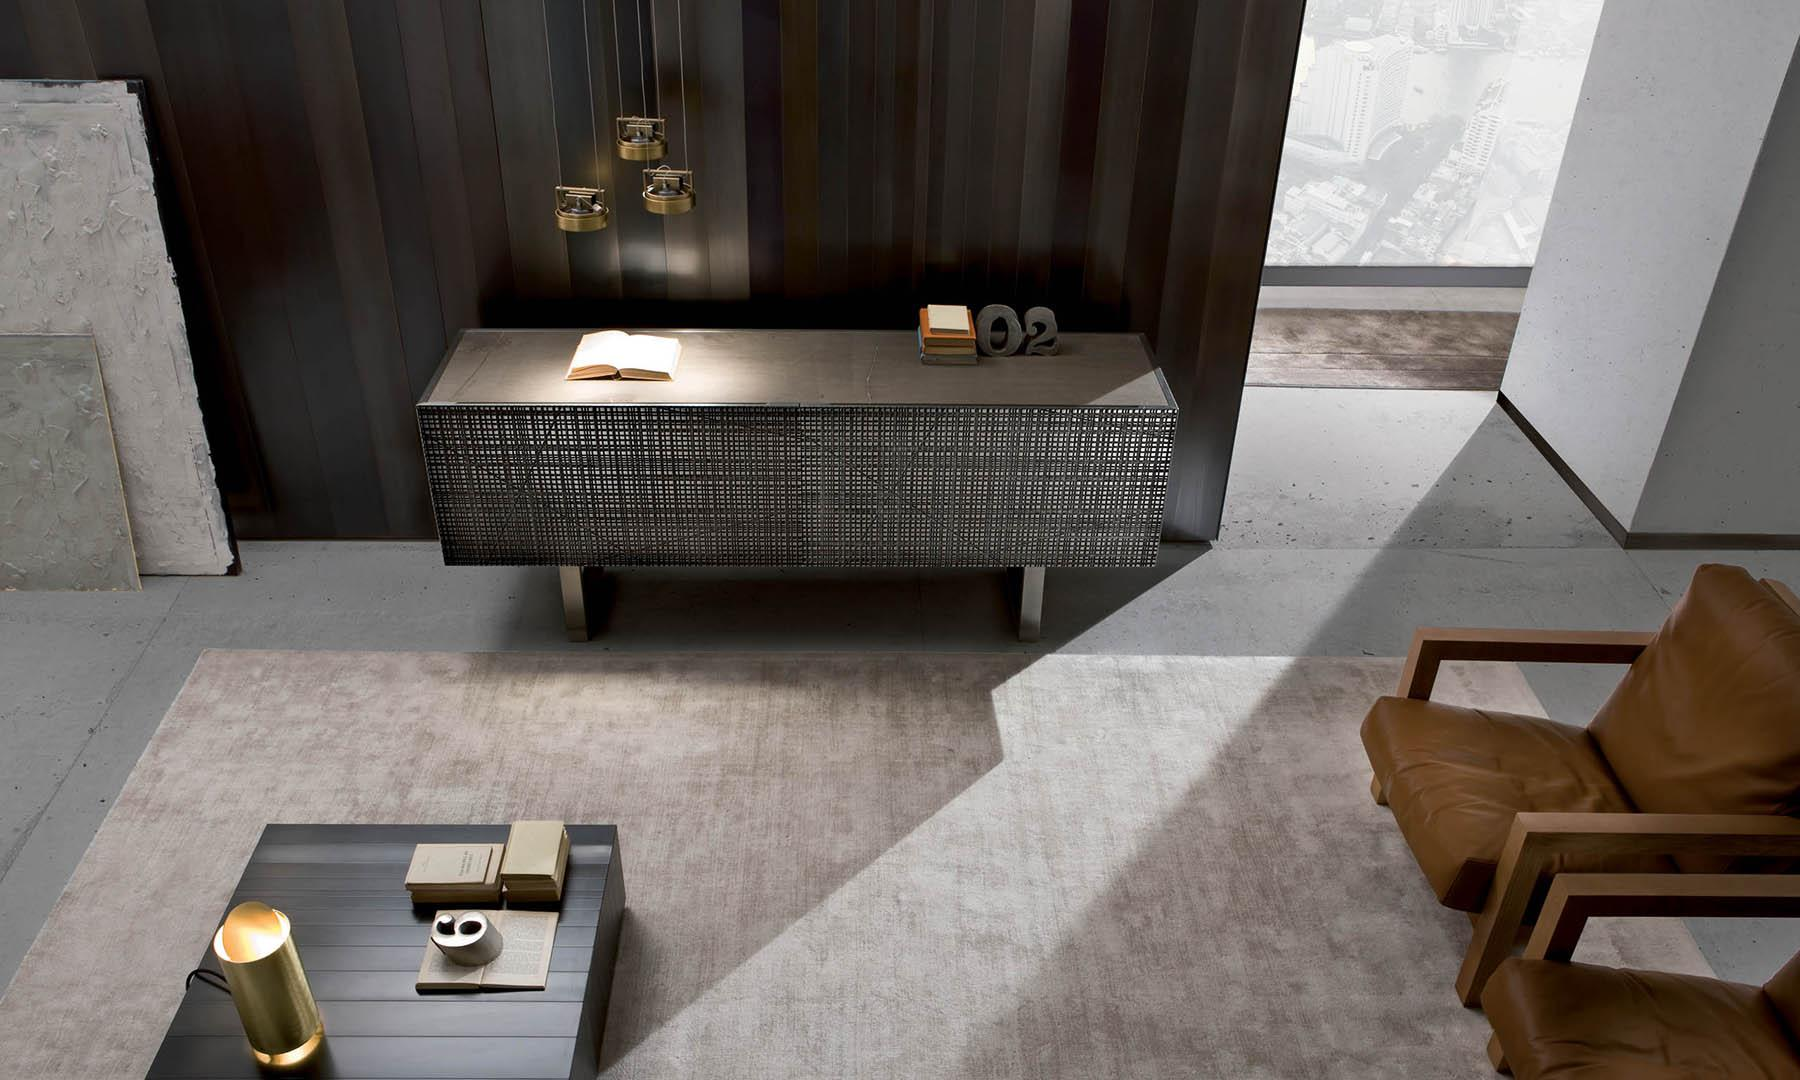 luxury living sideboard in liquid metal tin finish with wall panels in burnished iron